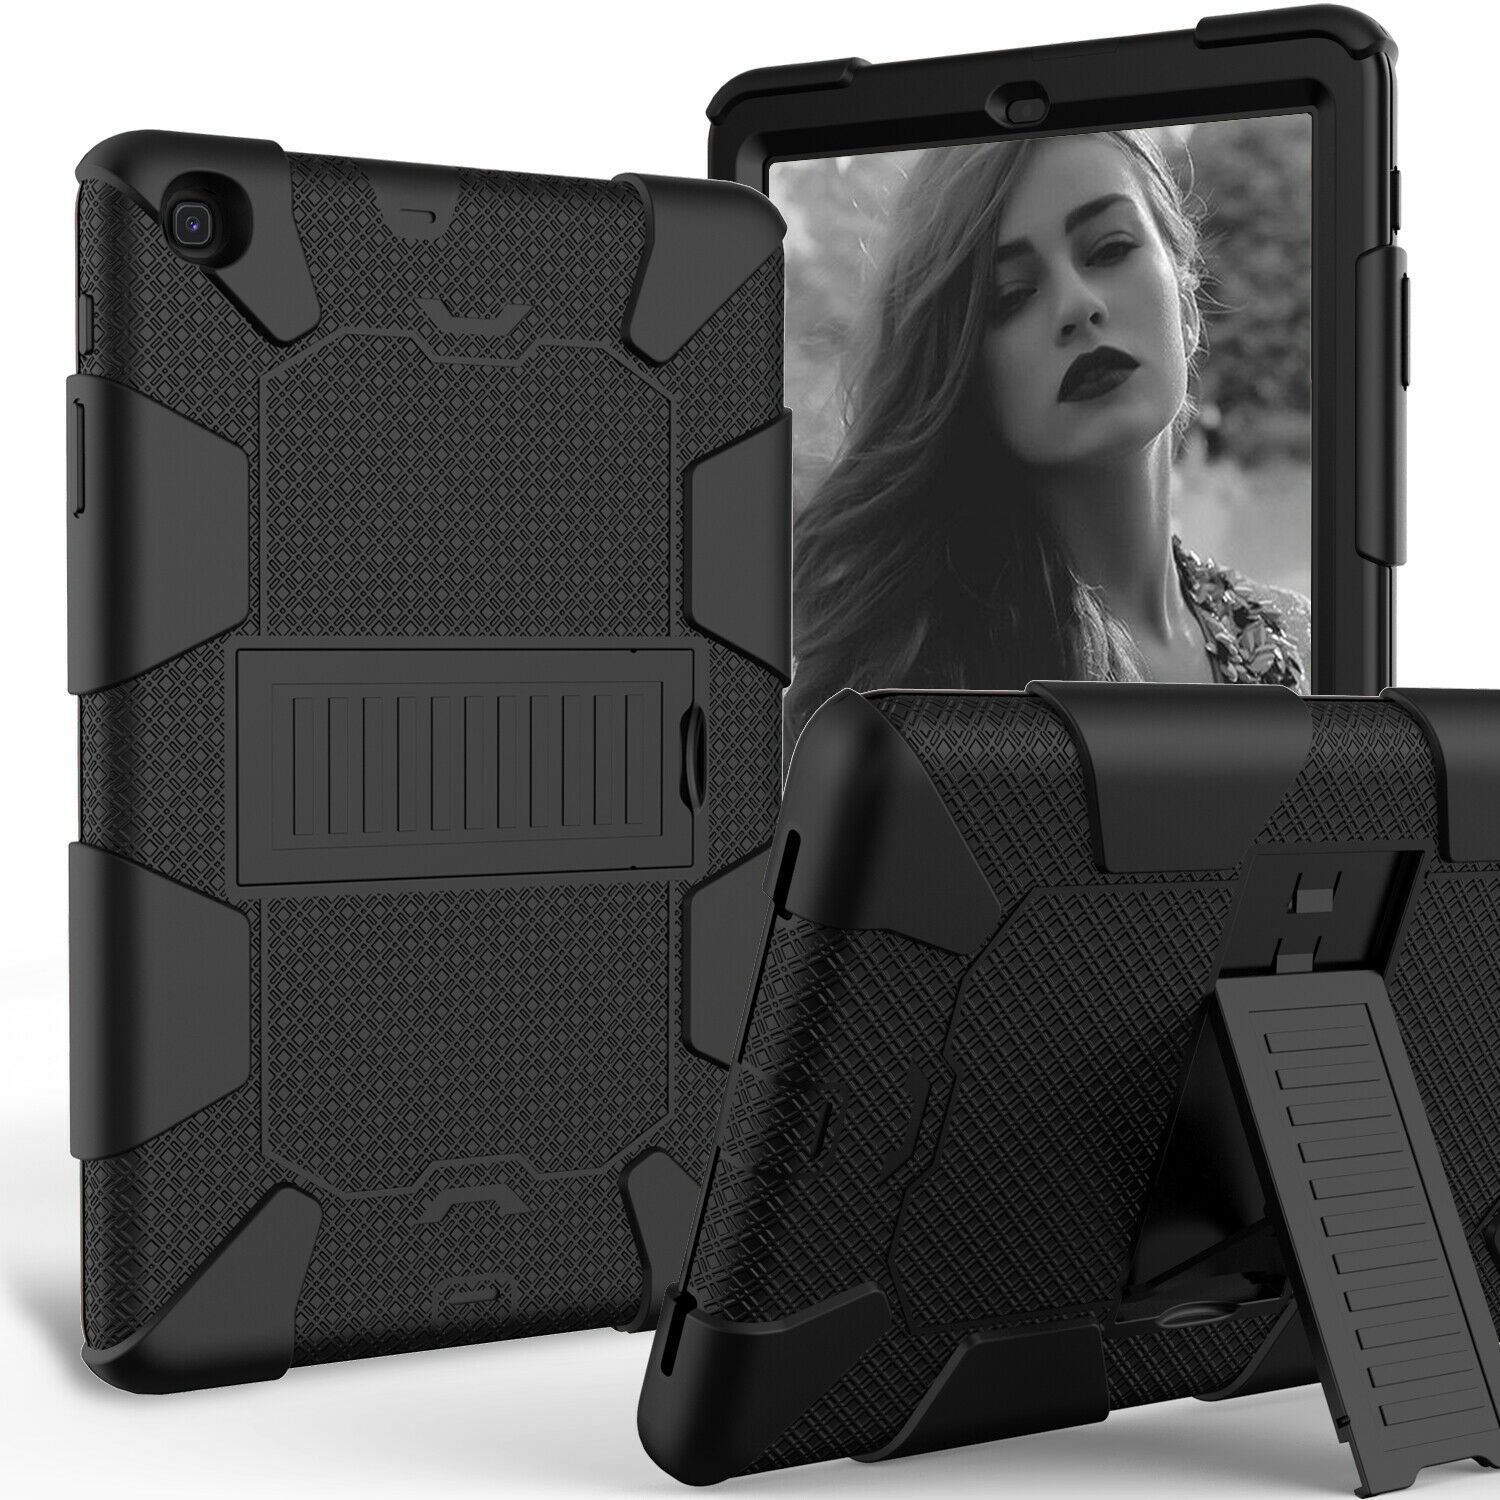 For Samsung Galaxy Tab A 10.1 SM-T510 T515 2019 Shockproof Armor Stand Case Cases, Covers, Keyboard Folios